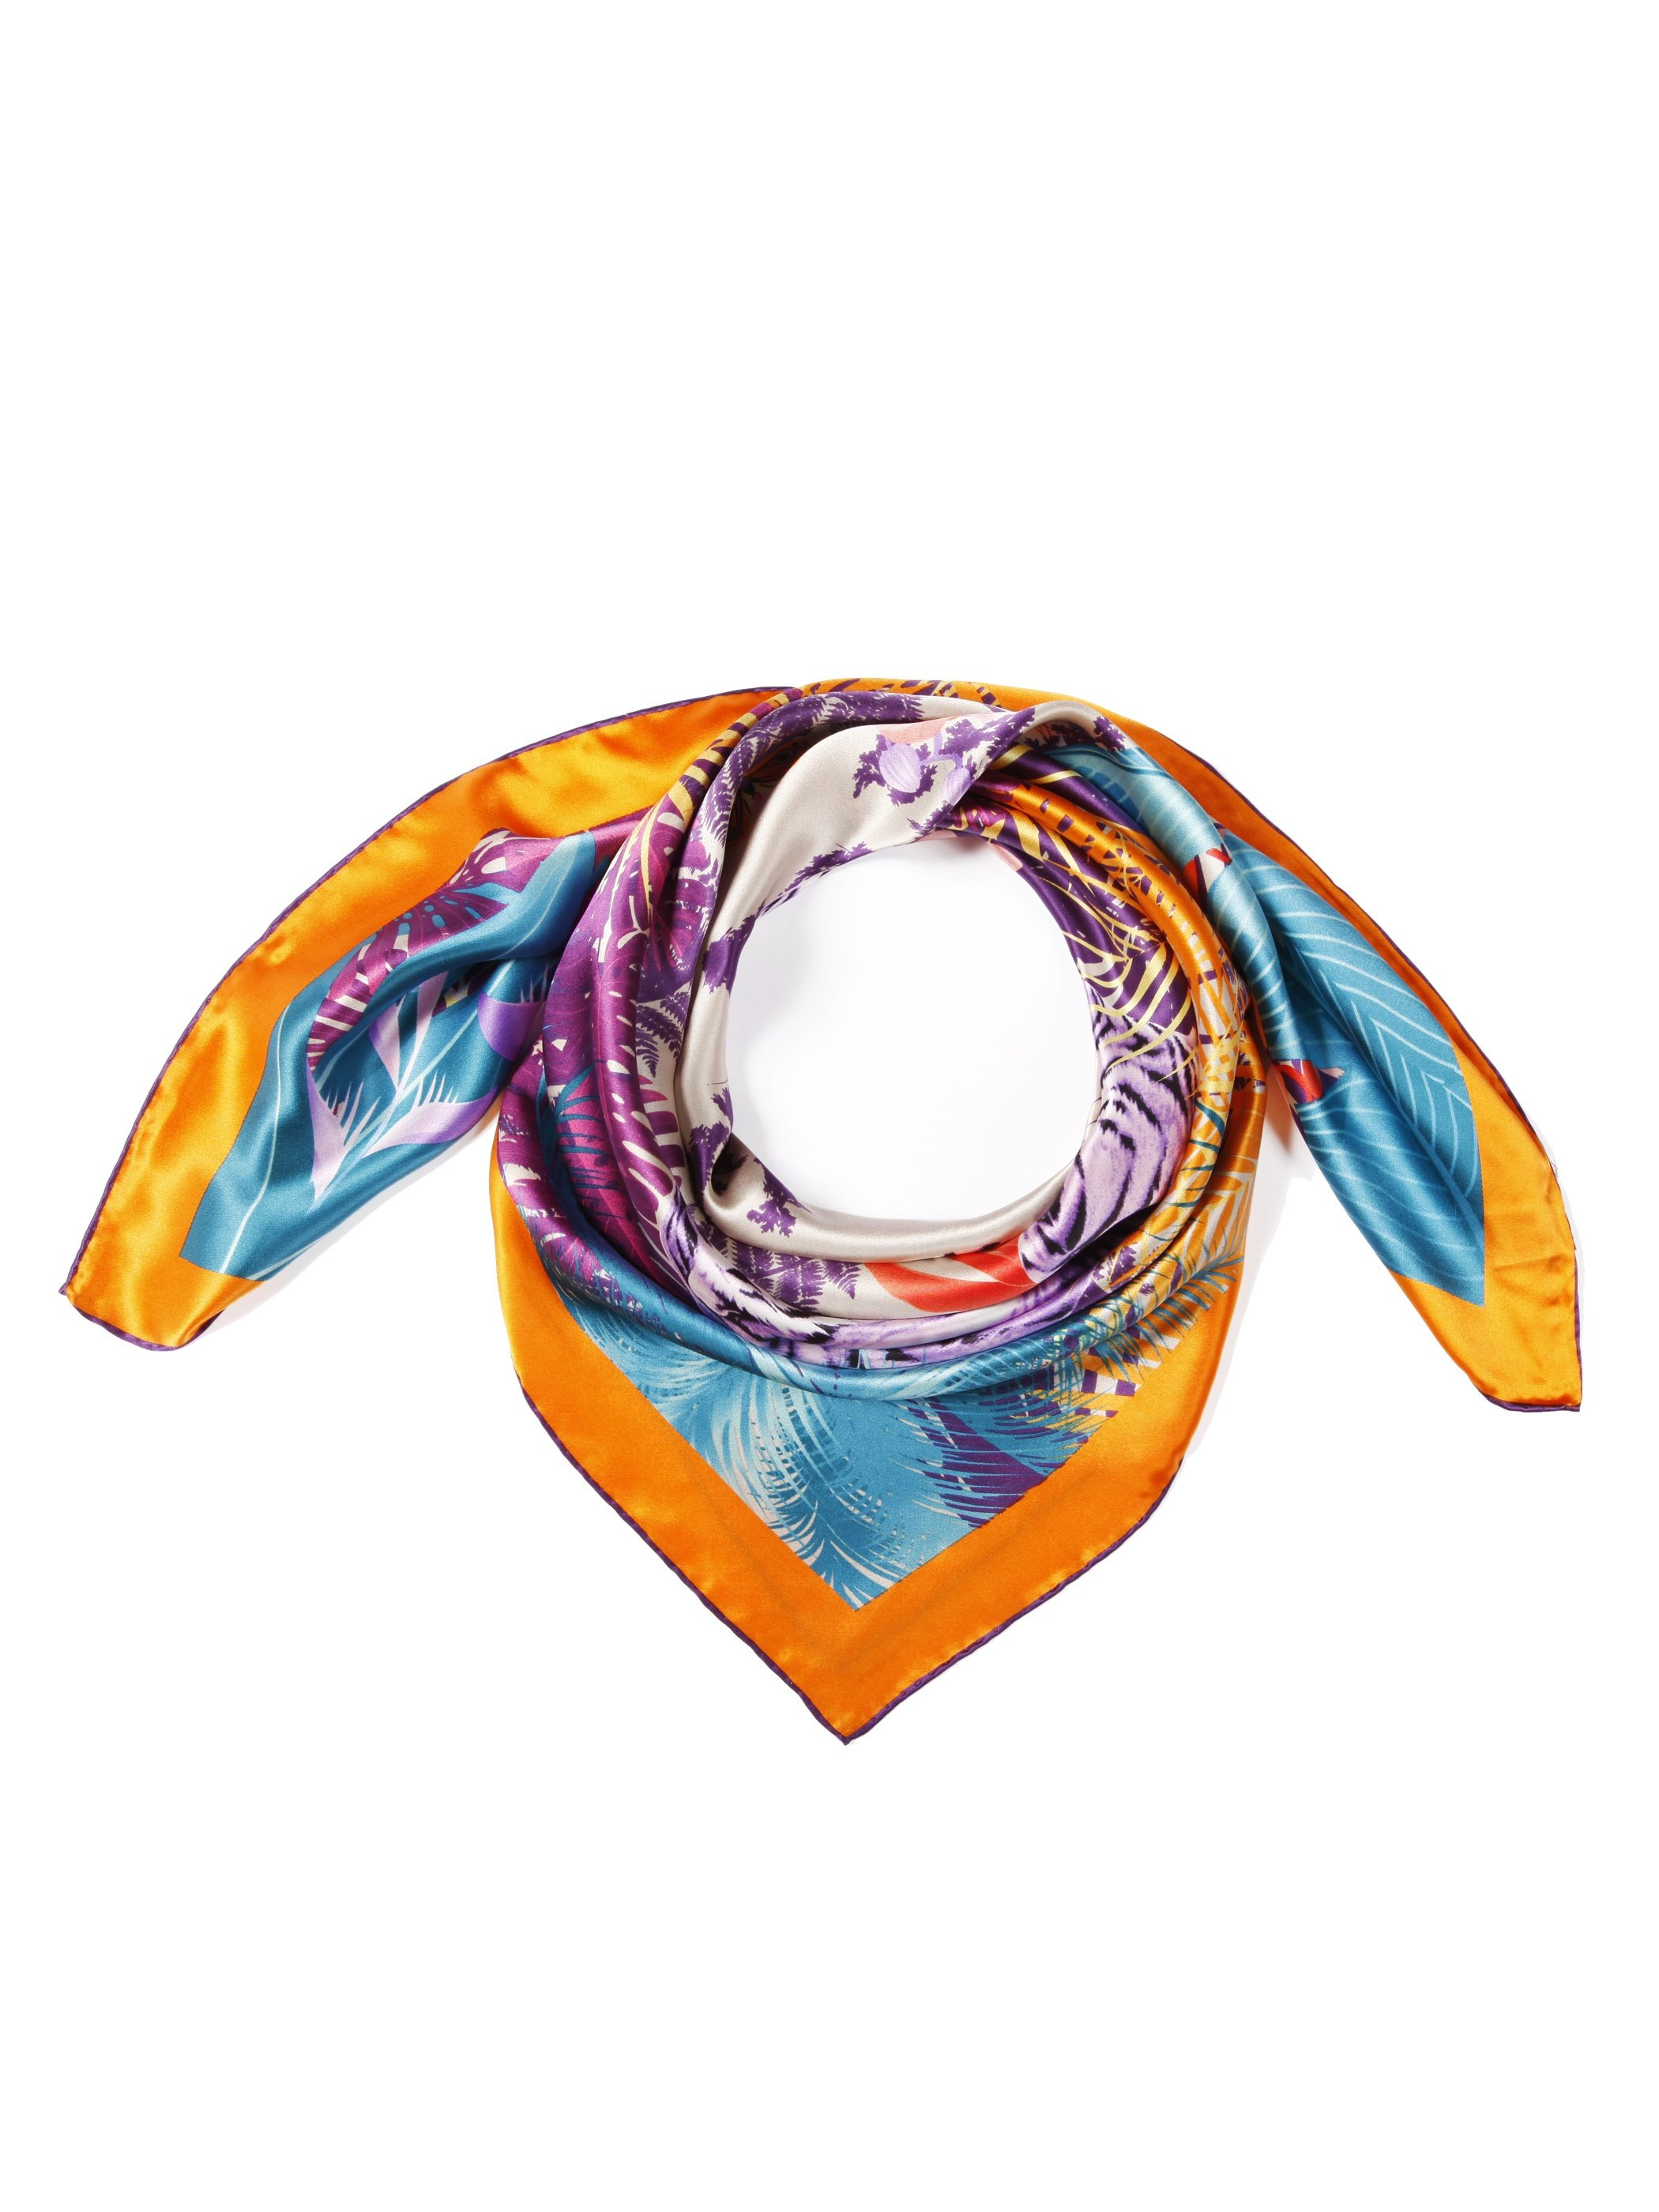 Stylish Tigers in the Jungle Print Soft Mulberry Silk Square Scarf